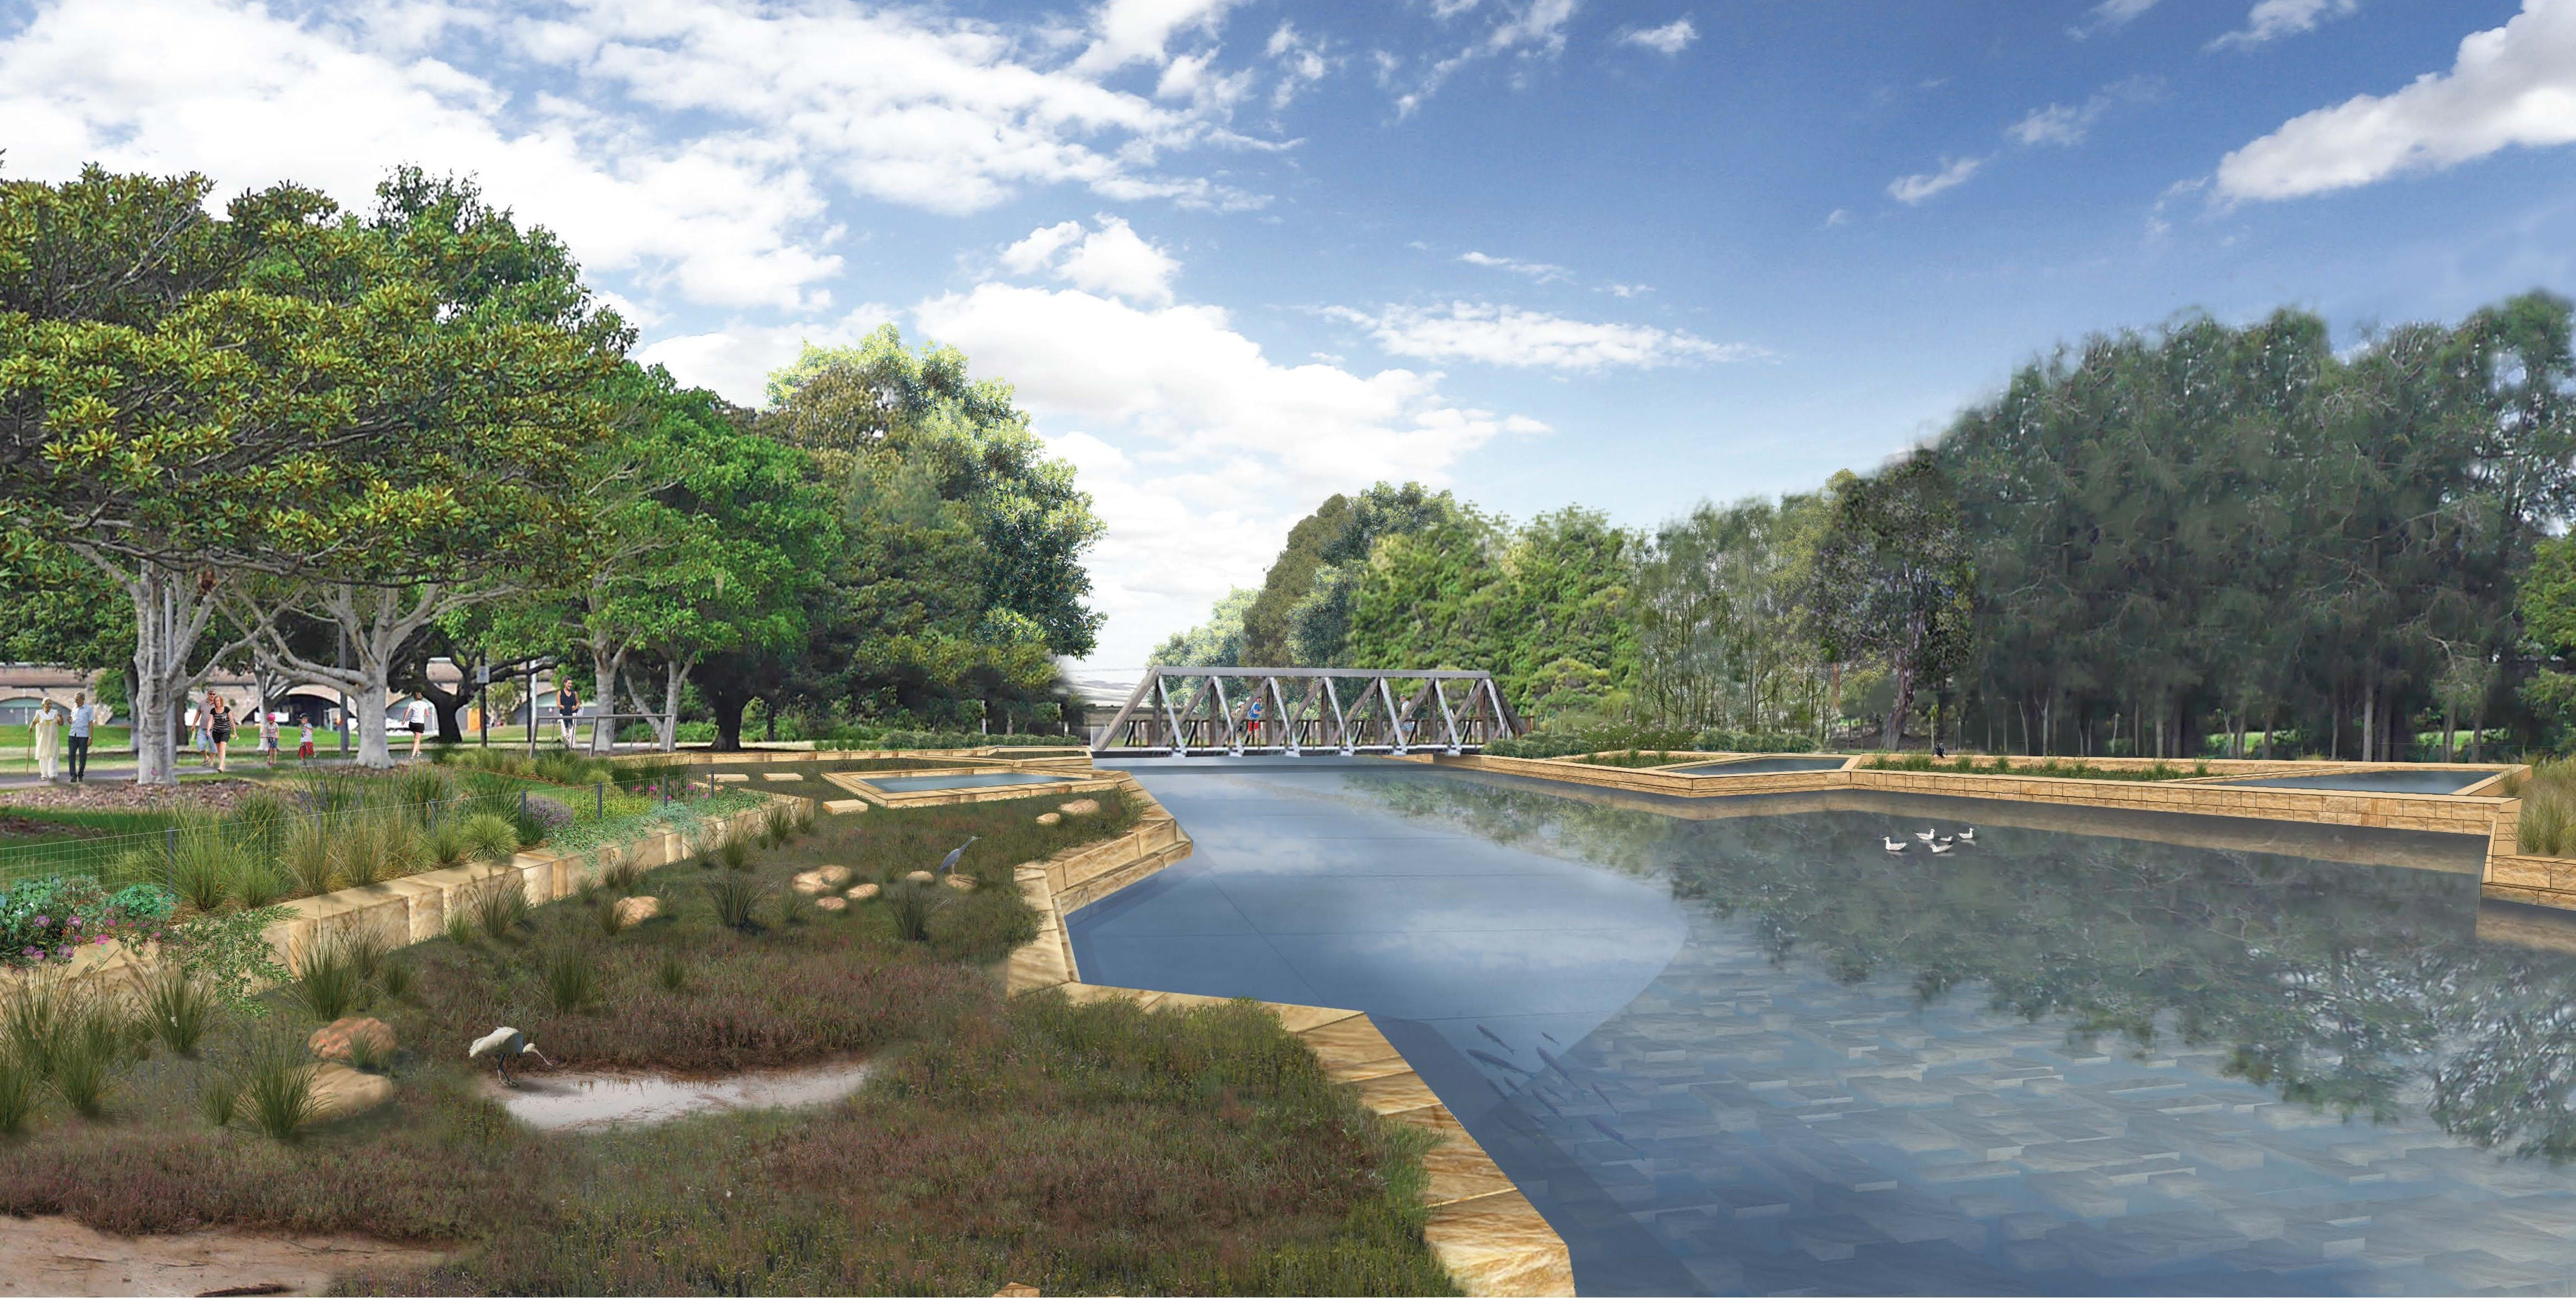 An artist's impression of Johnstons Creek after the naturalisaiton project.